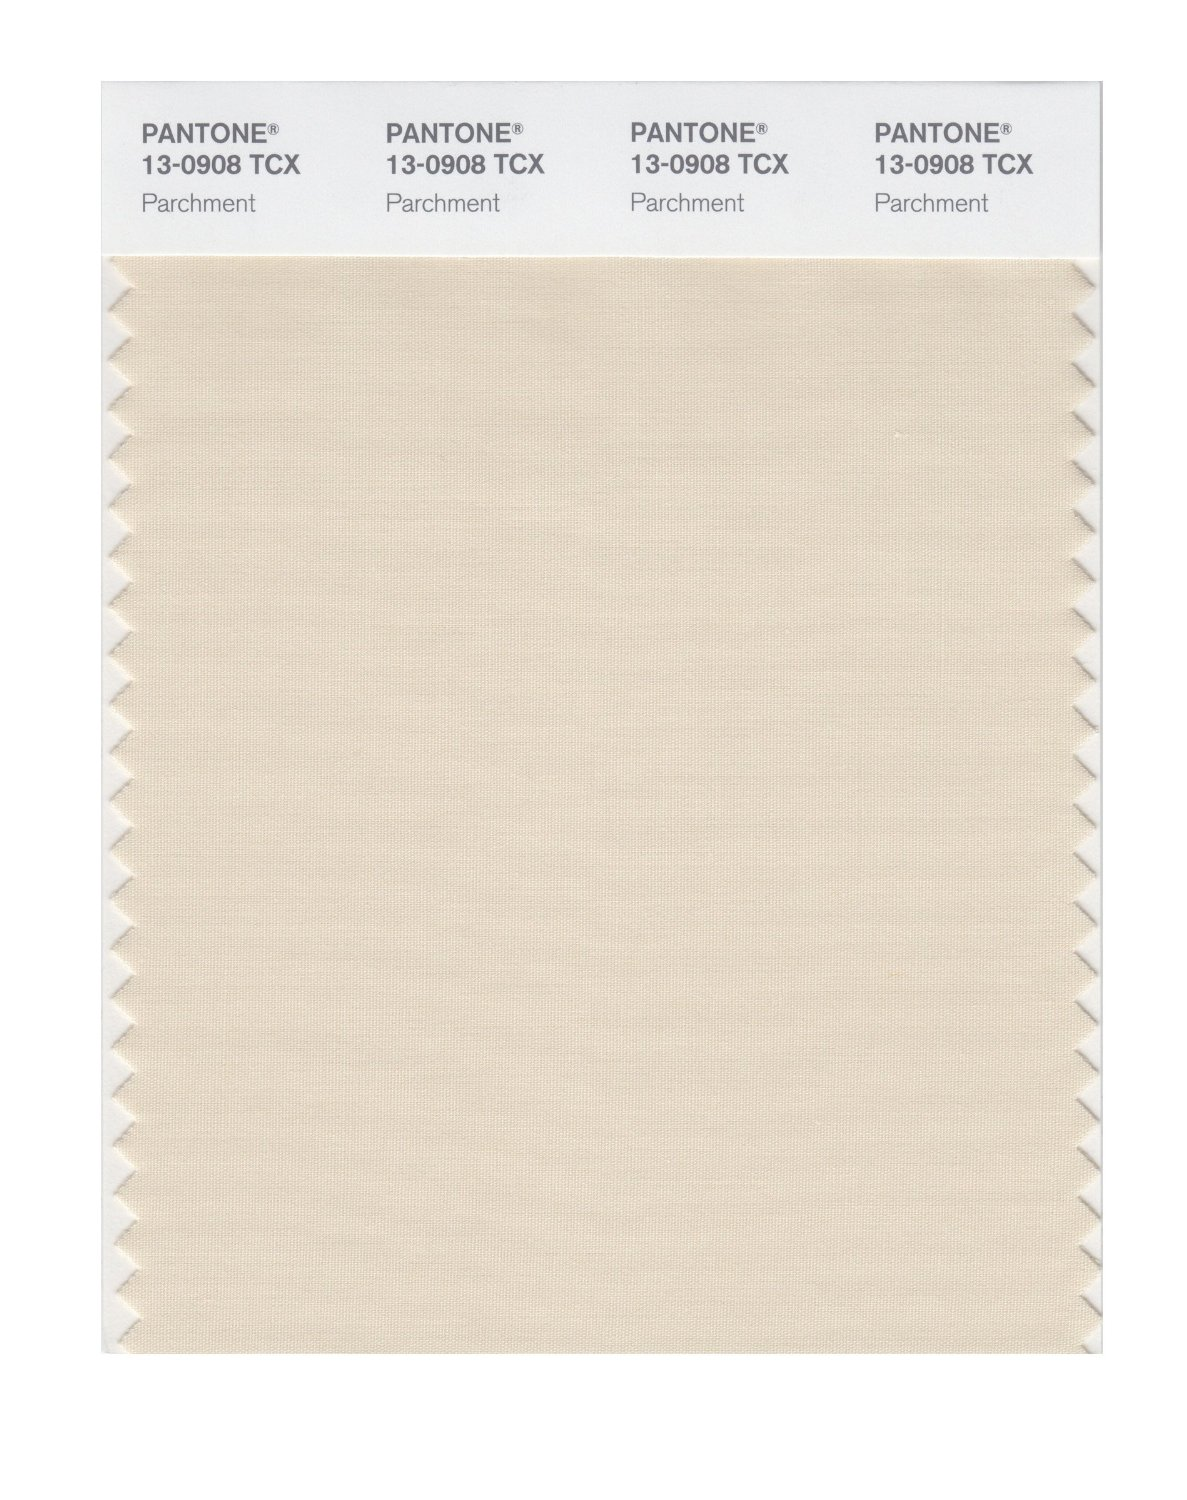 Pantone Smart Swatch 13-0908 Parchment